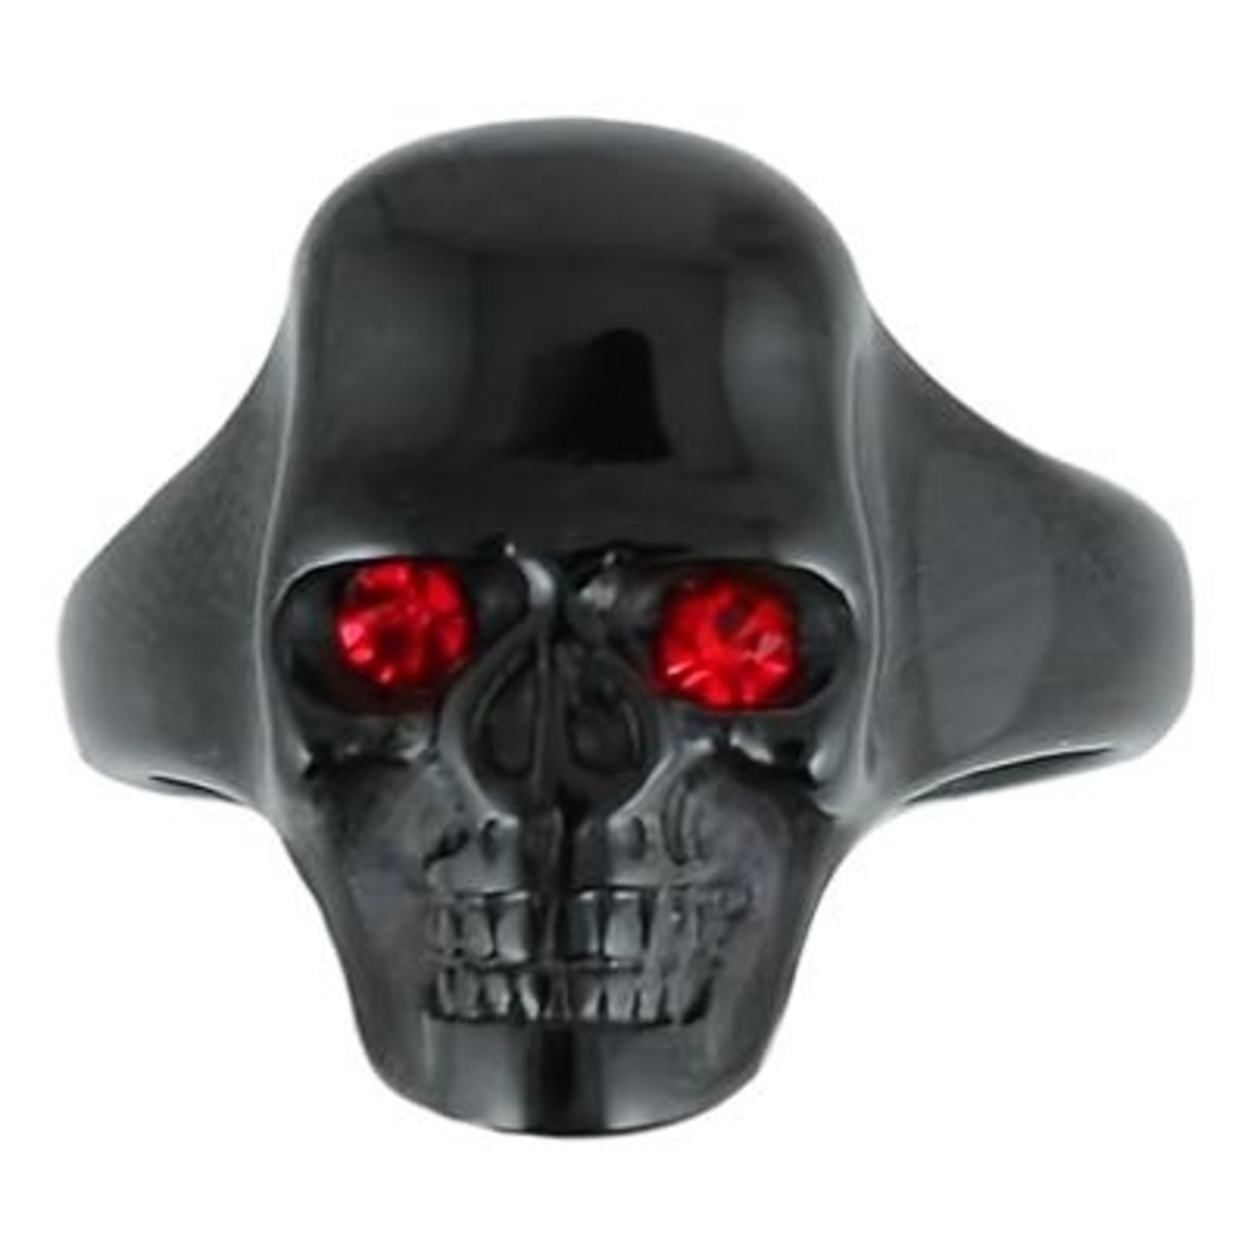 Sk1854 Gents Black Skull With Imitation Ruby Eyes Ring Stainless Steel Motorcycle Biker Jewelry 9